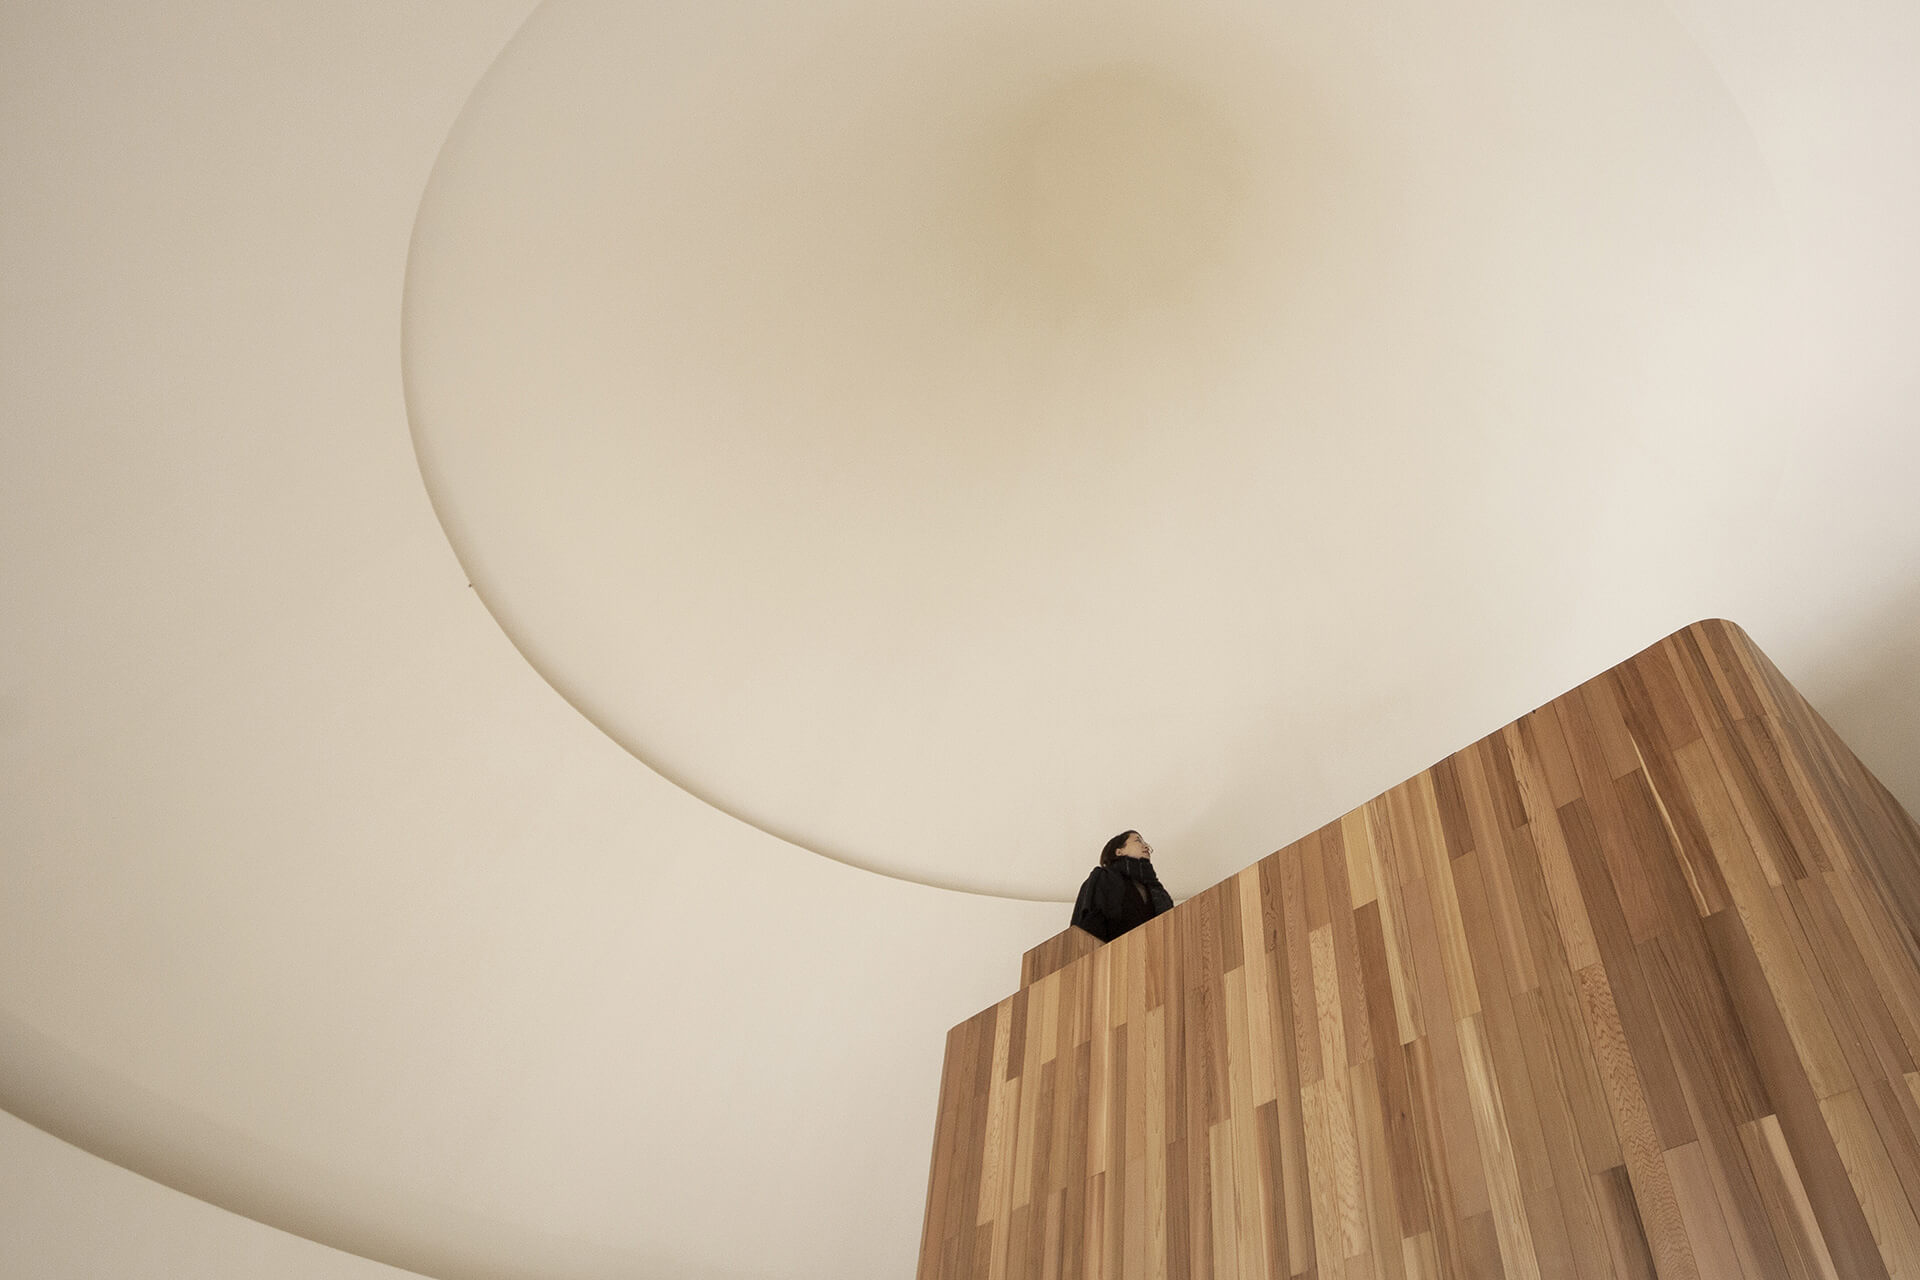 The pure white interior of the home's soaring conical ceiling is rounded at the top |ZJJZ | China | STIRworld